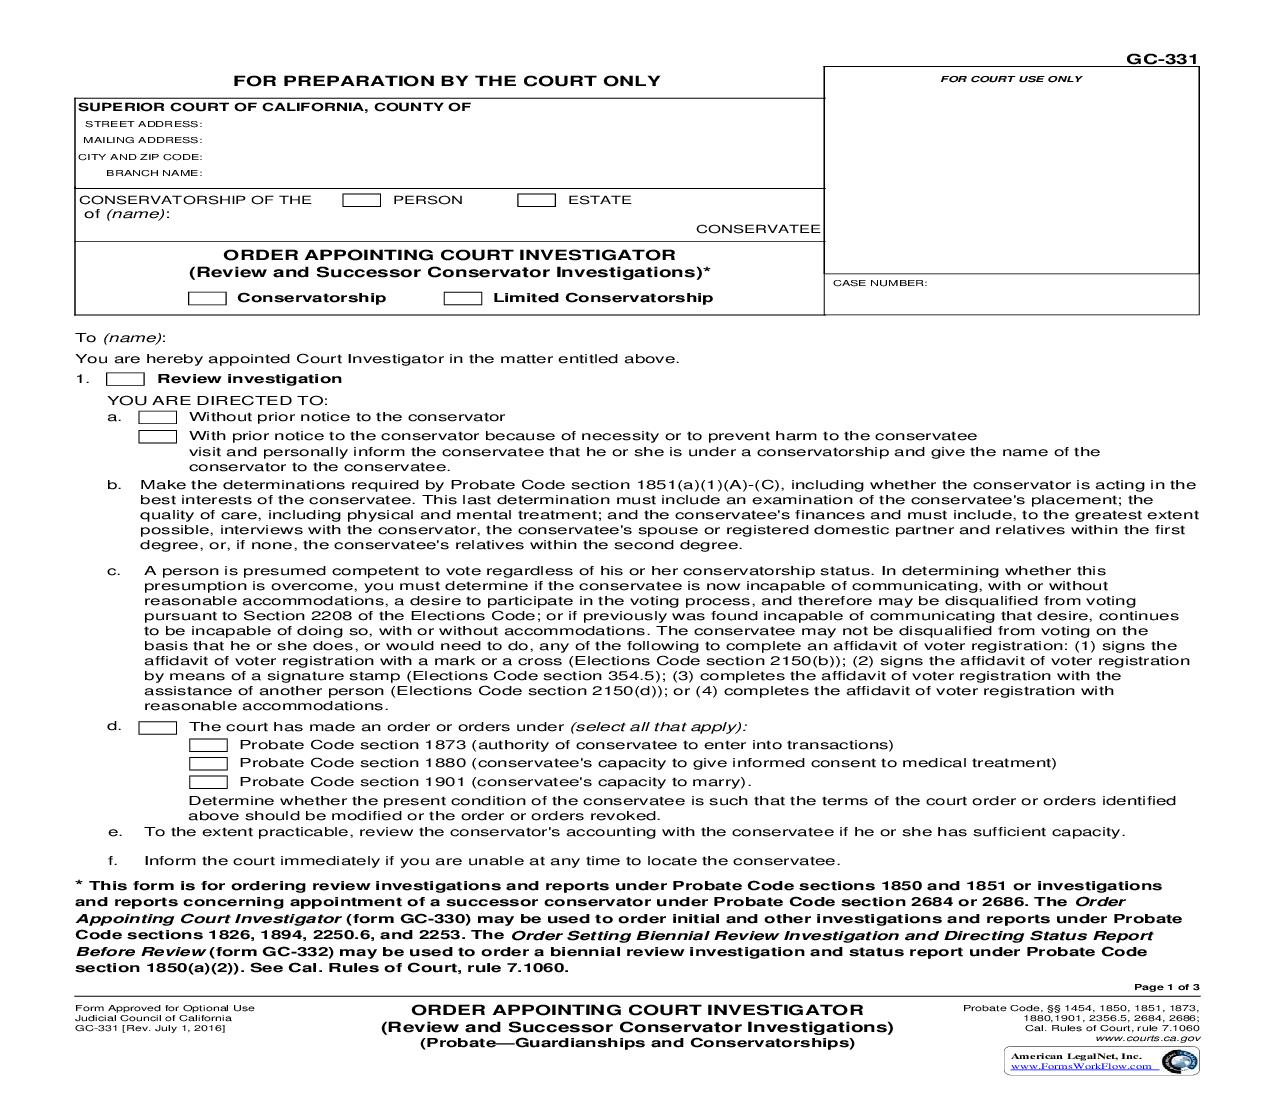 Order Appointing Court Investigator (Review And Successor Conservator Investigations) {GC-331} | Pdf Fpdf Doc Docx | California